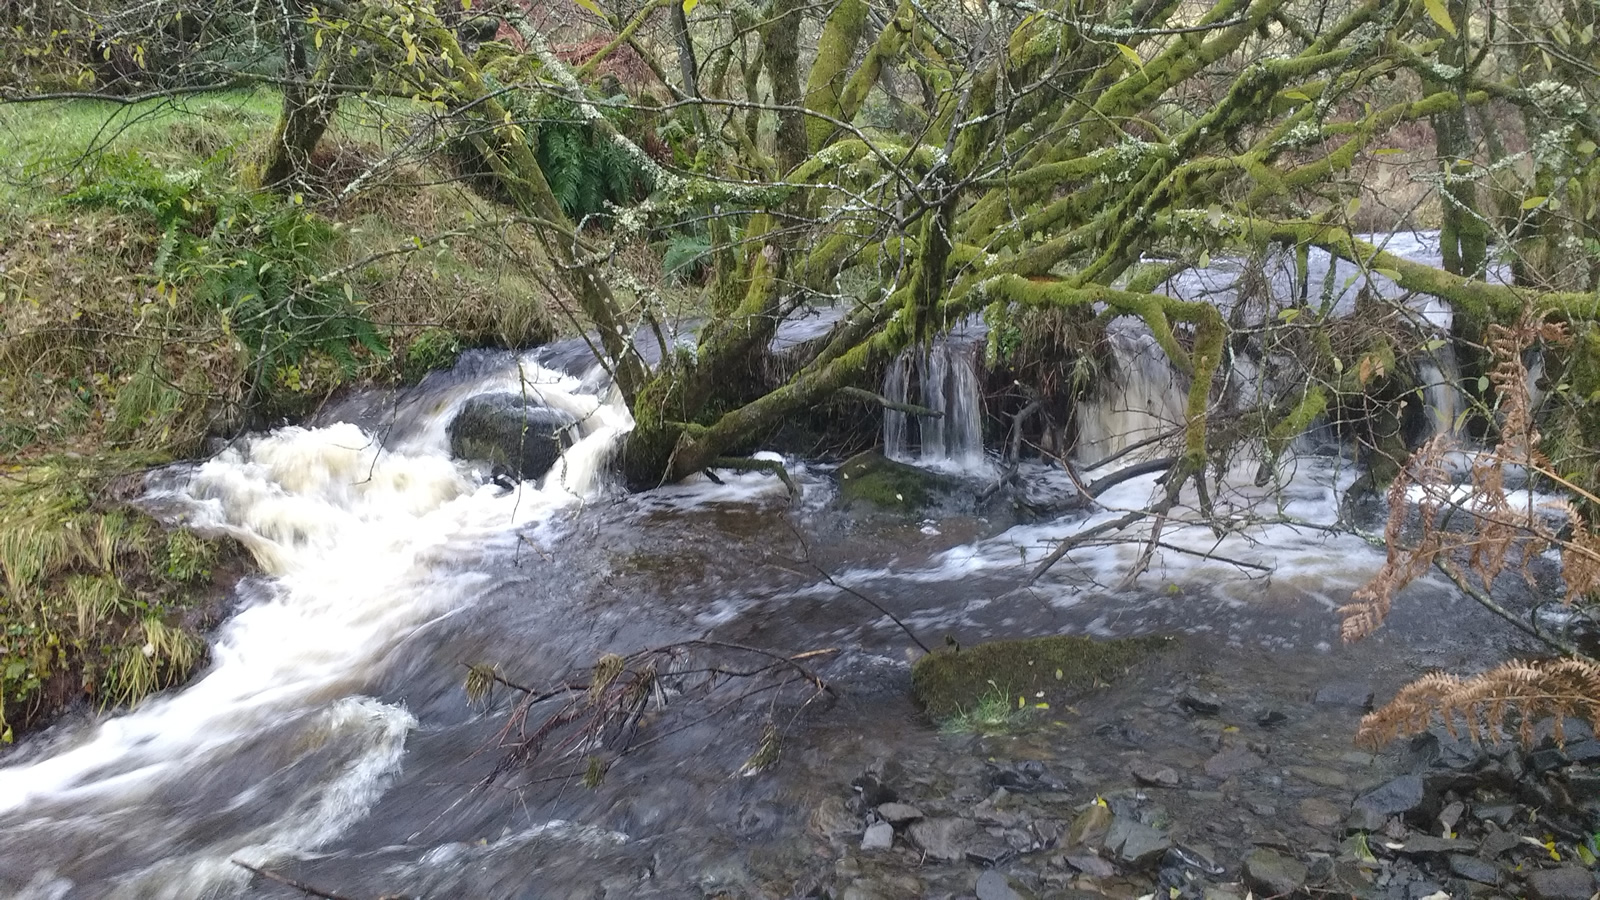 Stroanshalloch Burn after rain